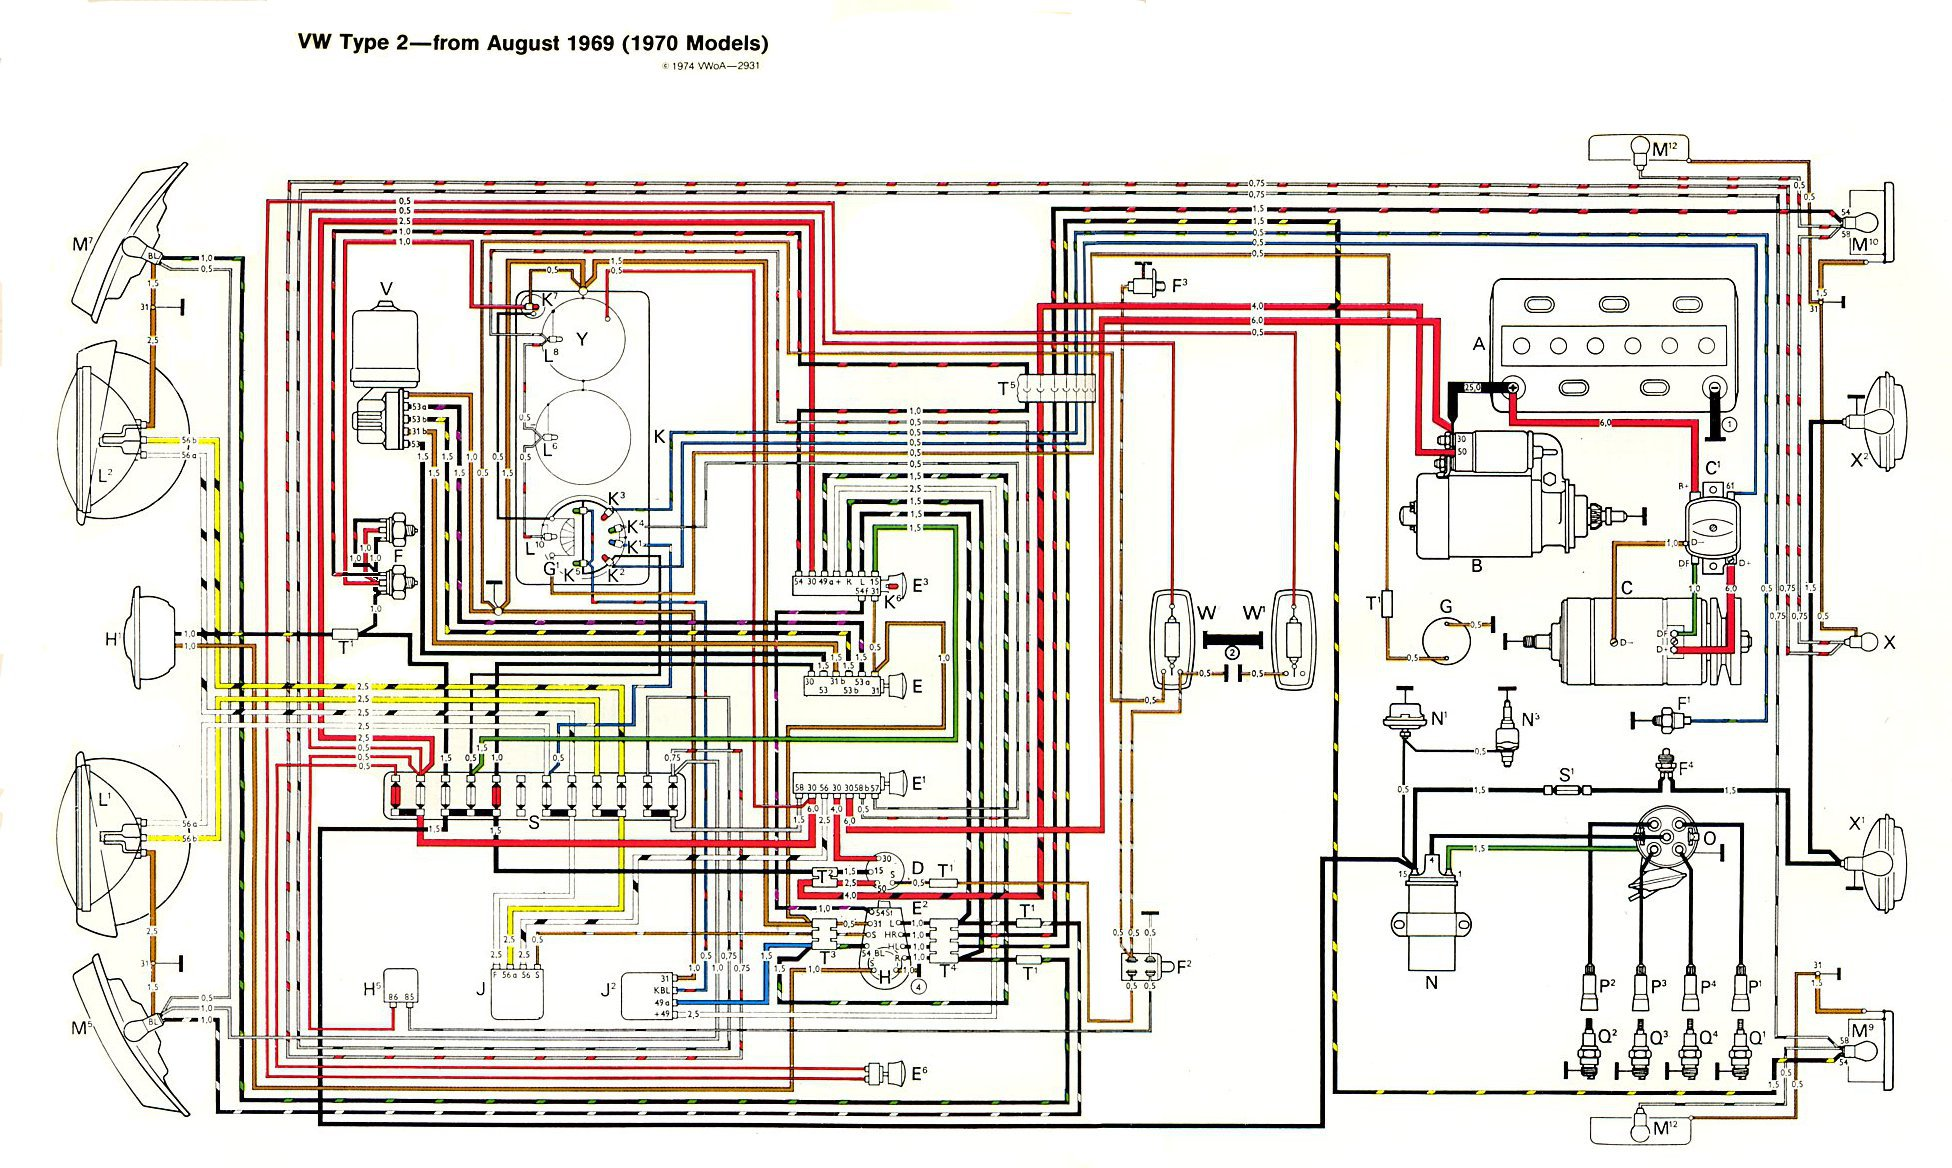 baybus_70 thesamba com type 2 wiring diagrams Wiring Harness Diagram at honlapkeszites.co